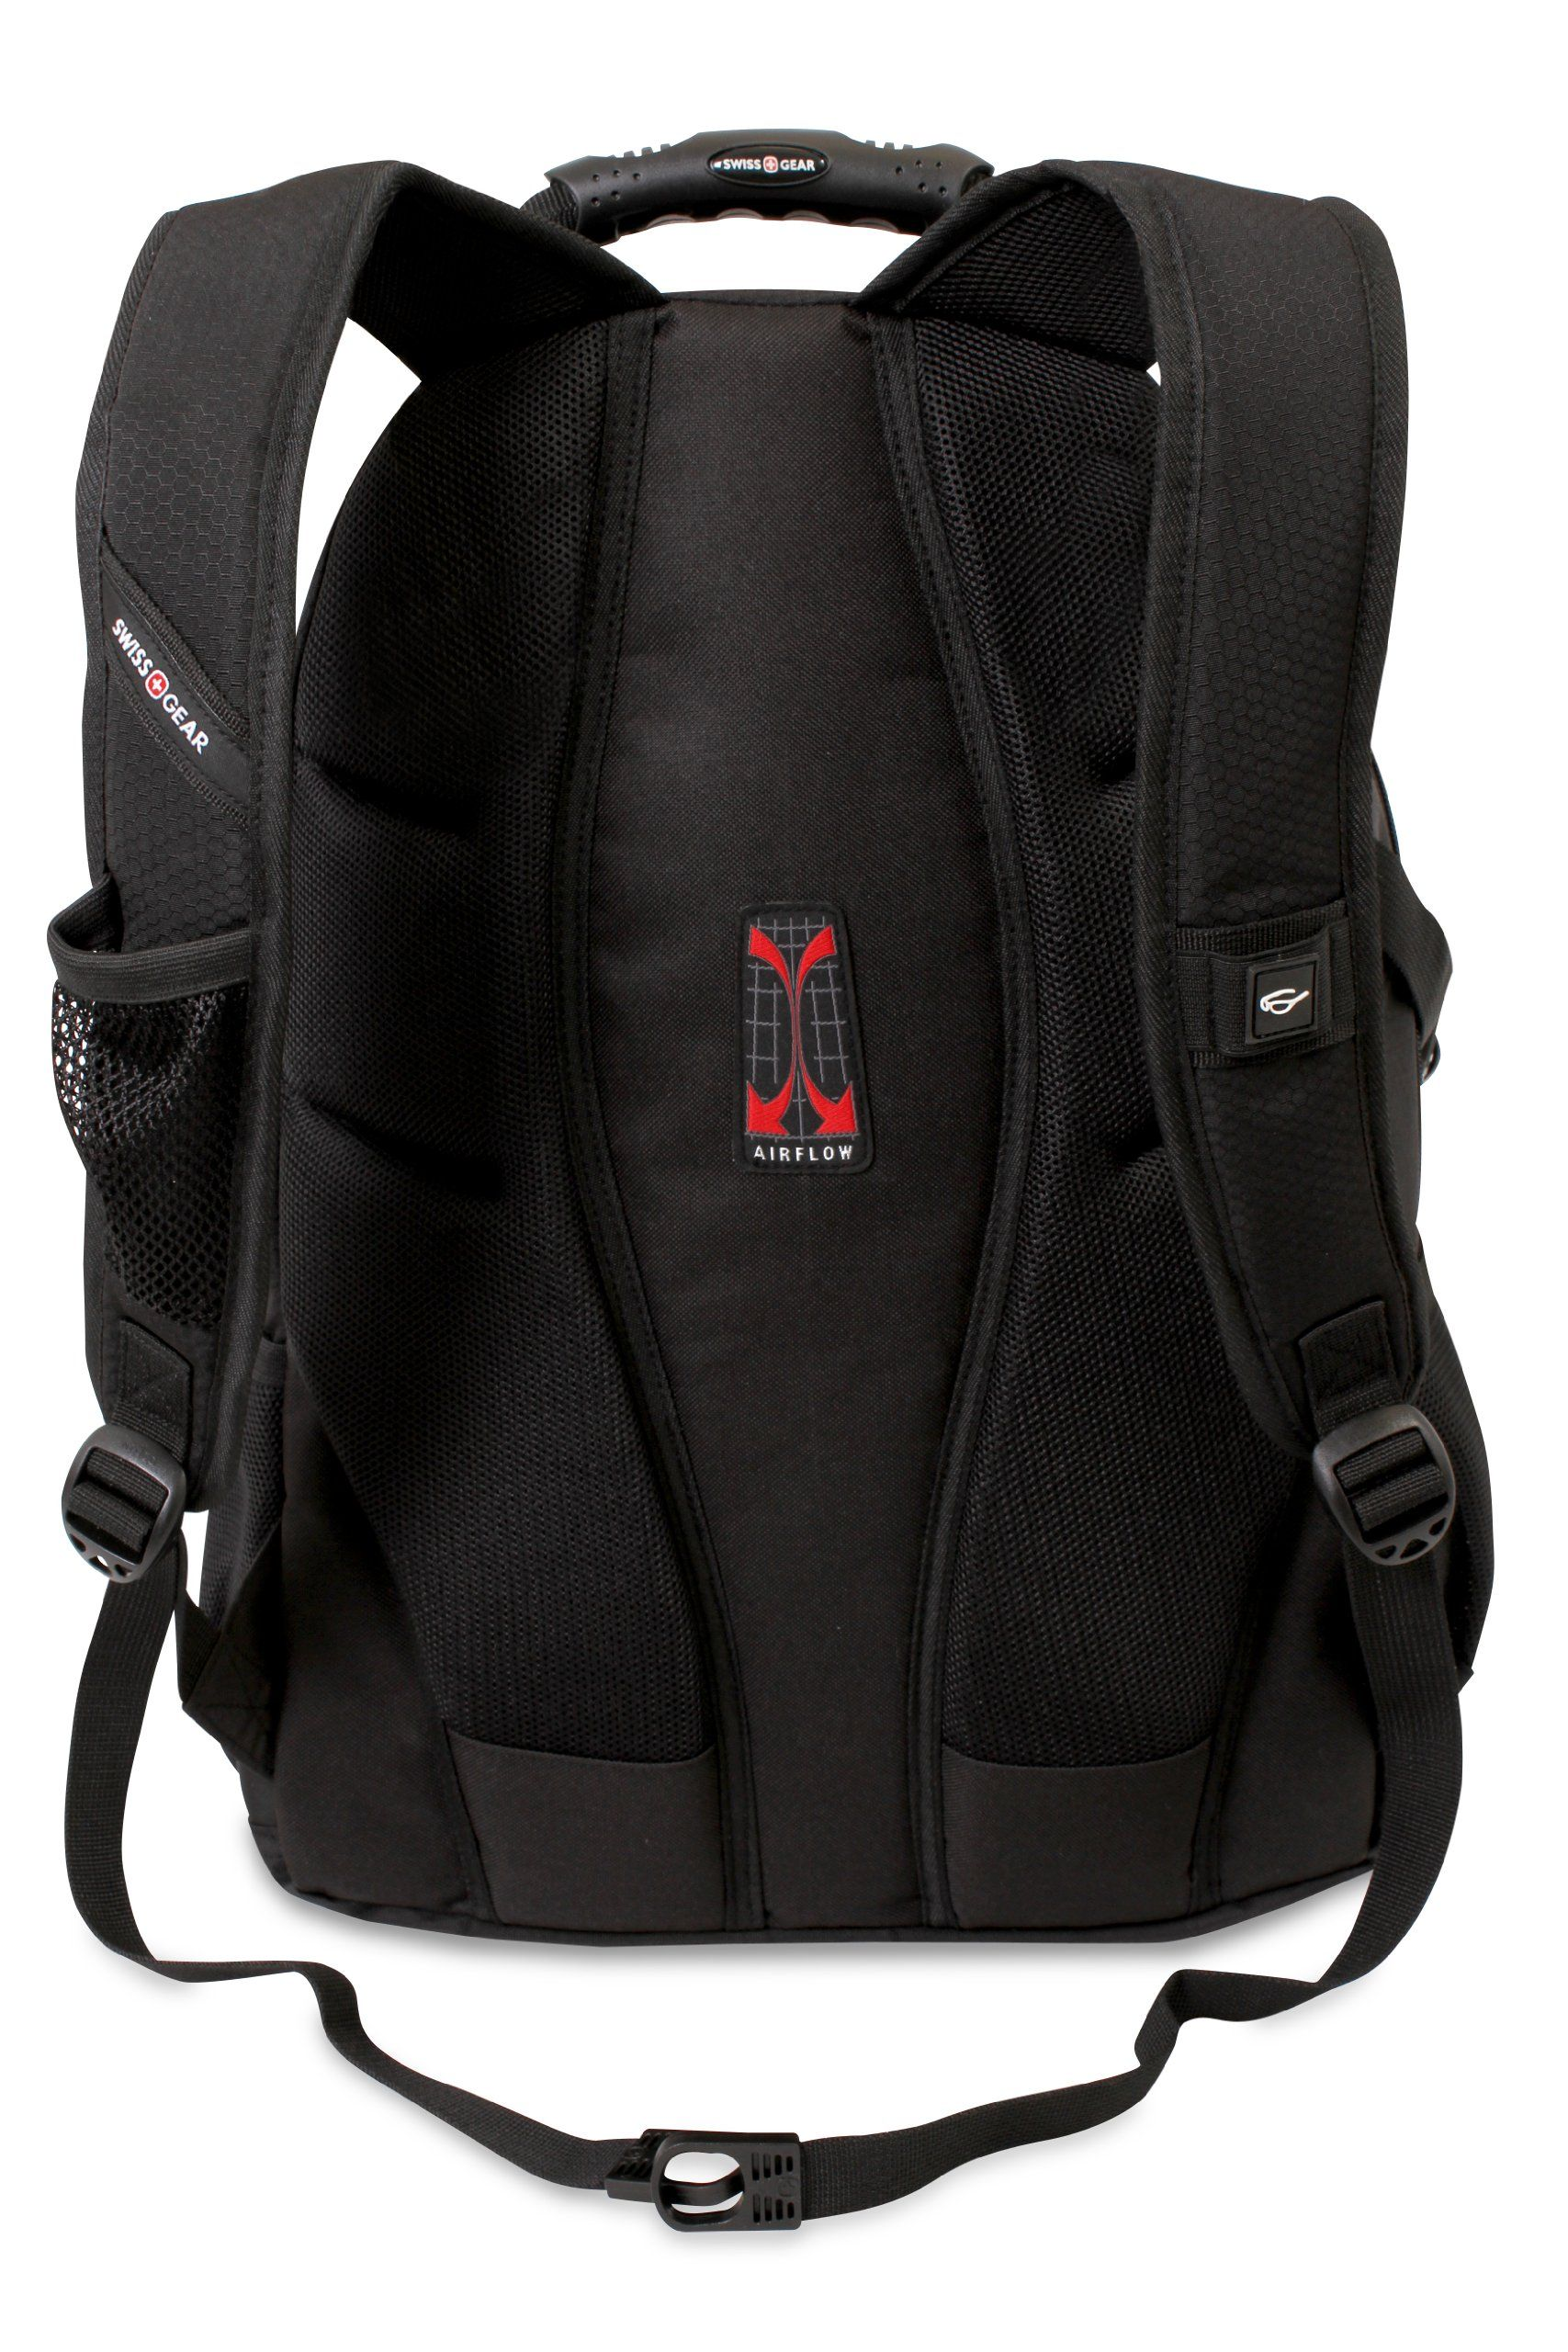 Amazon.com  SwissGear Laptop Computer Backpack with Secure Velcro Strap  Closure SA3183 (Black Red) Fits Most 15 Inch Laptops  Computers    Accessories 2ba5778a20bae